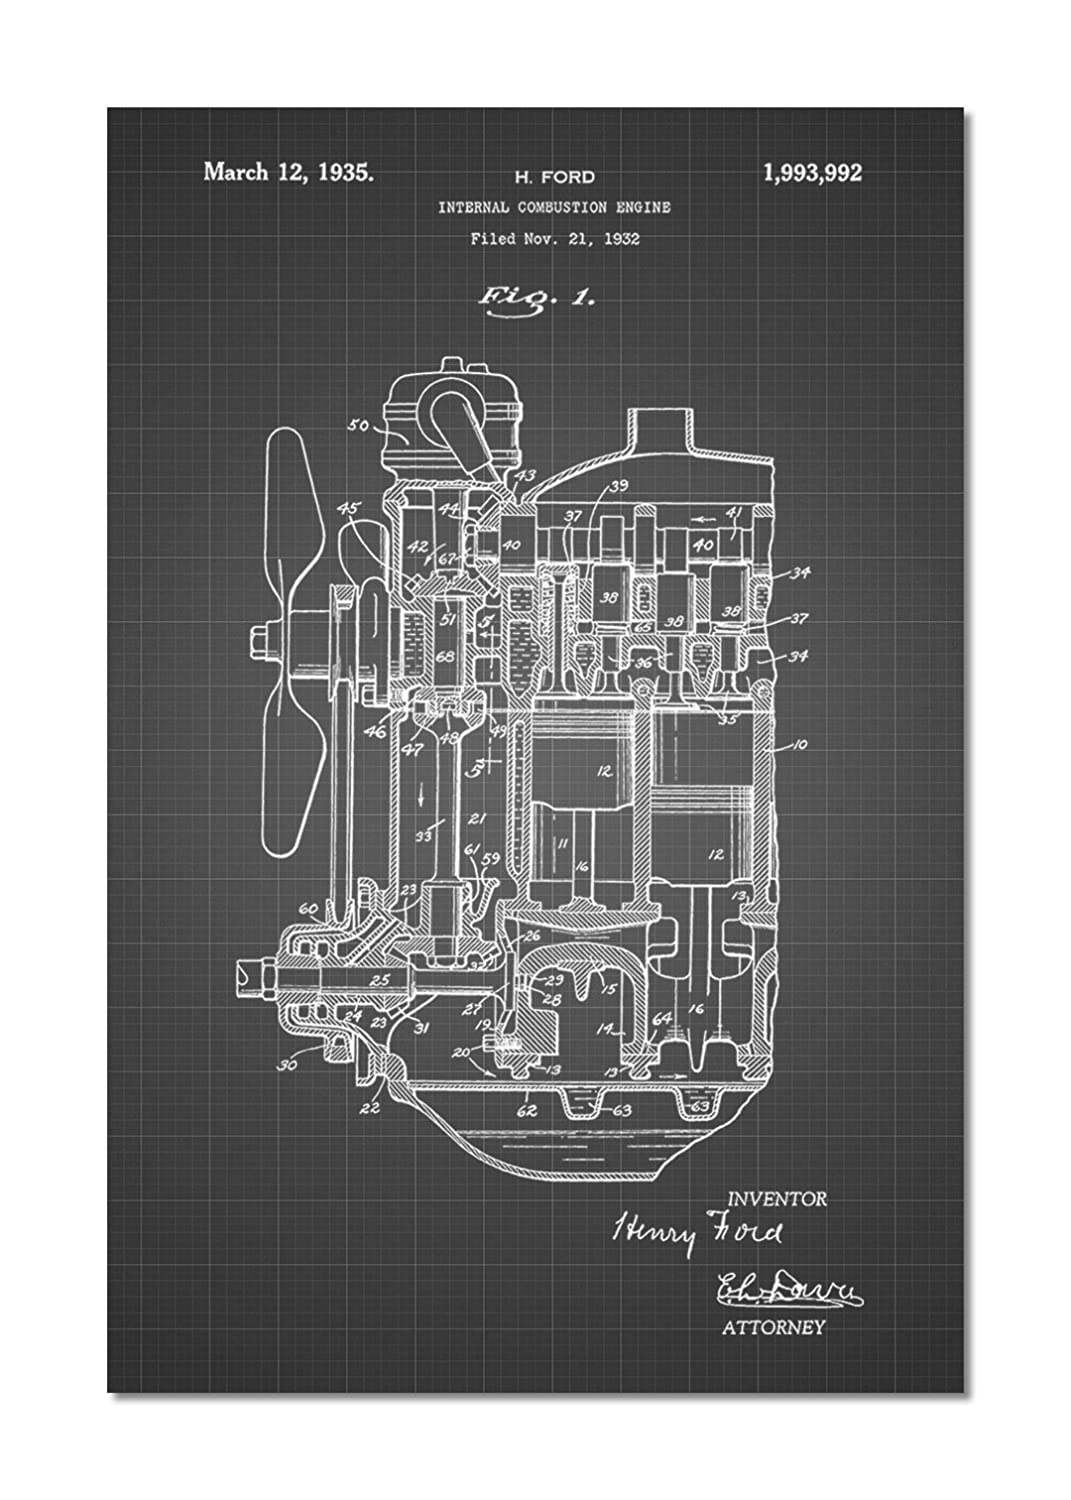 Ford Internal Combustion Engine Patent Poster Posters Diagram For Idiots Prints